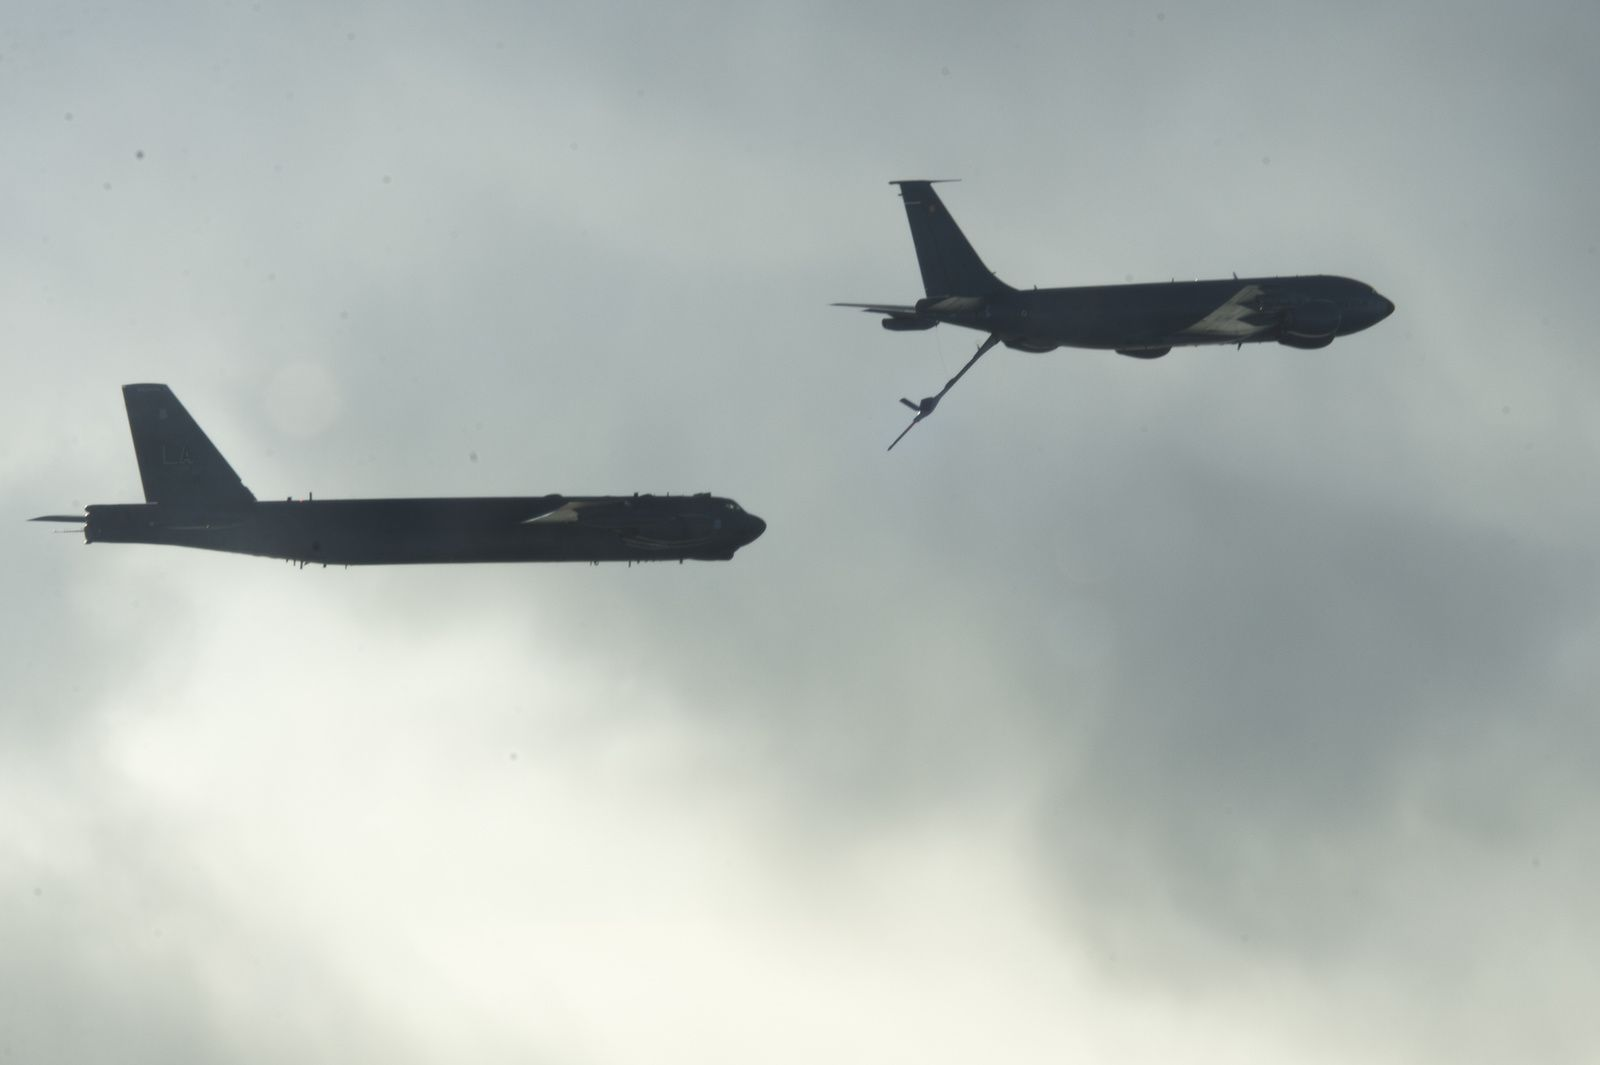 Photos-Vidéo : Un C-135FR de l'Armée de l'Air ravitaille en vol un B-52H de l'US Air Force